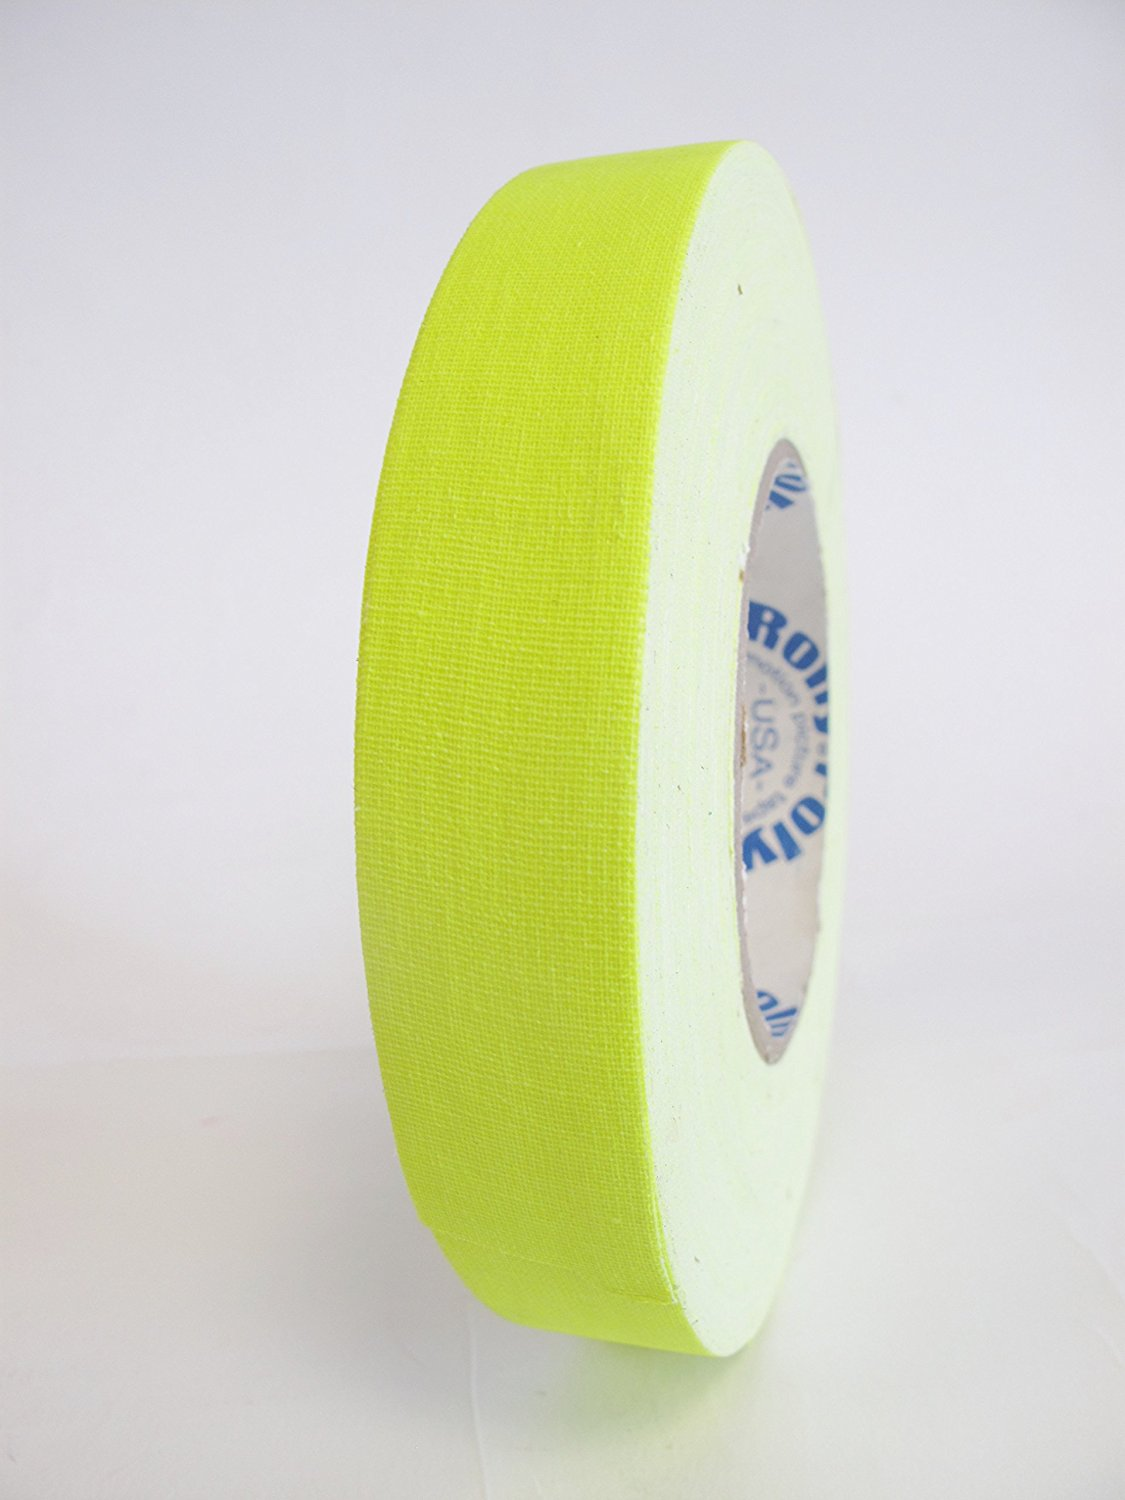 6 Rolls Premium Professional Grade Gaffer Tape - 1 Inch X 50 Yards - Fluorescent / Neon Yellow Color - 6 Rolls per Case